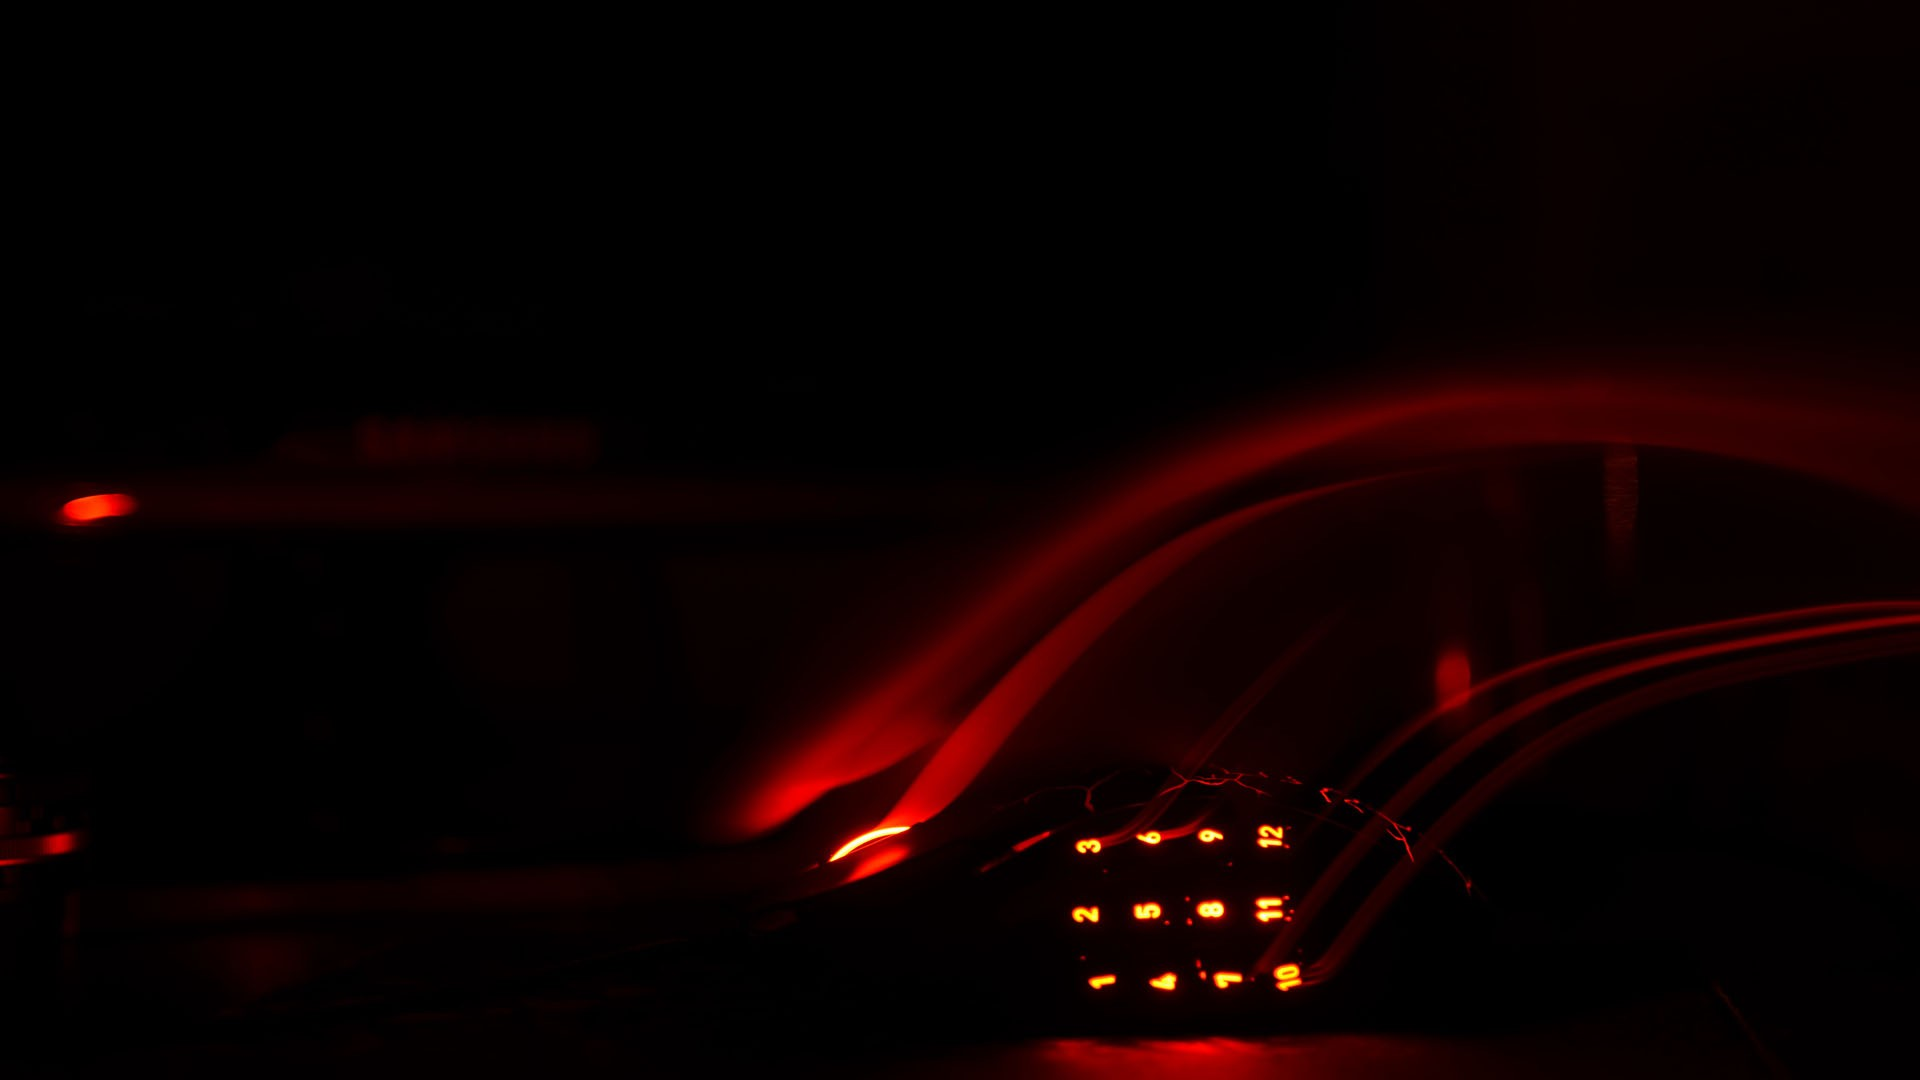 razer wallpaper 1920x1080 red - photo #12